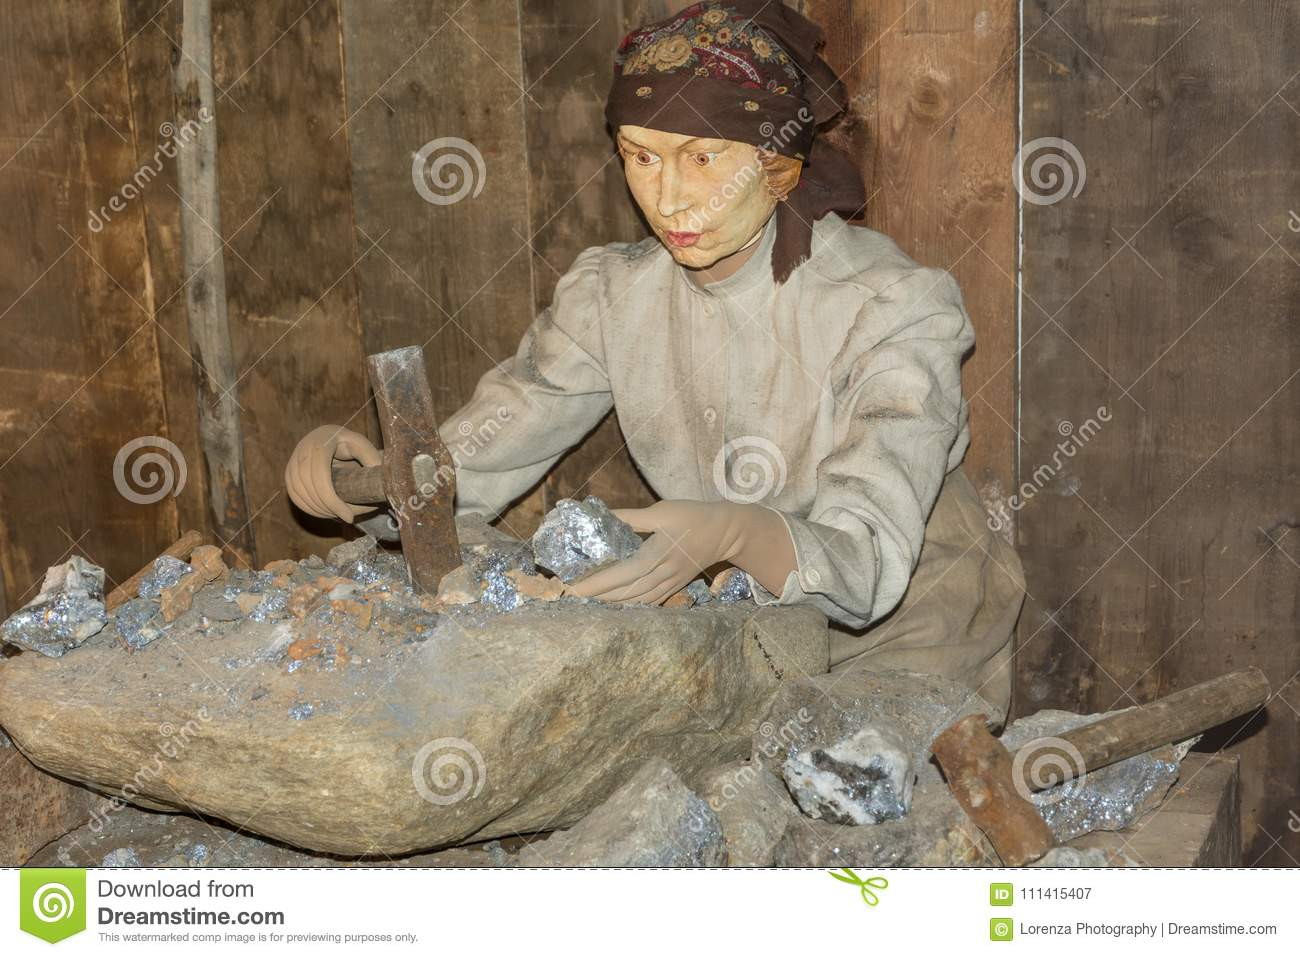 Ridnaun Valley Ridanna in South Tyrol, Italy-may 27,2017: interior hall of South Tyrol mining Museum:reproduction of a female fi